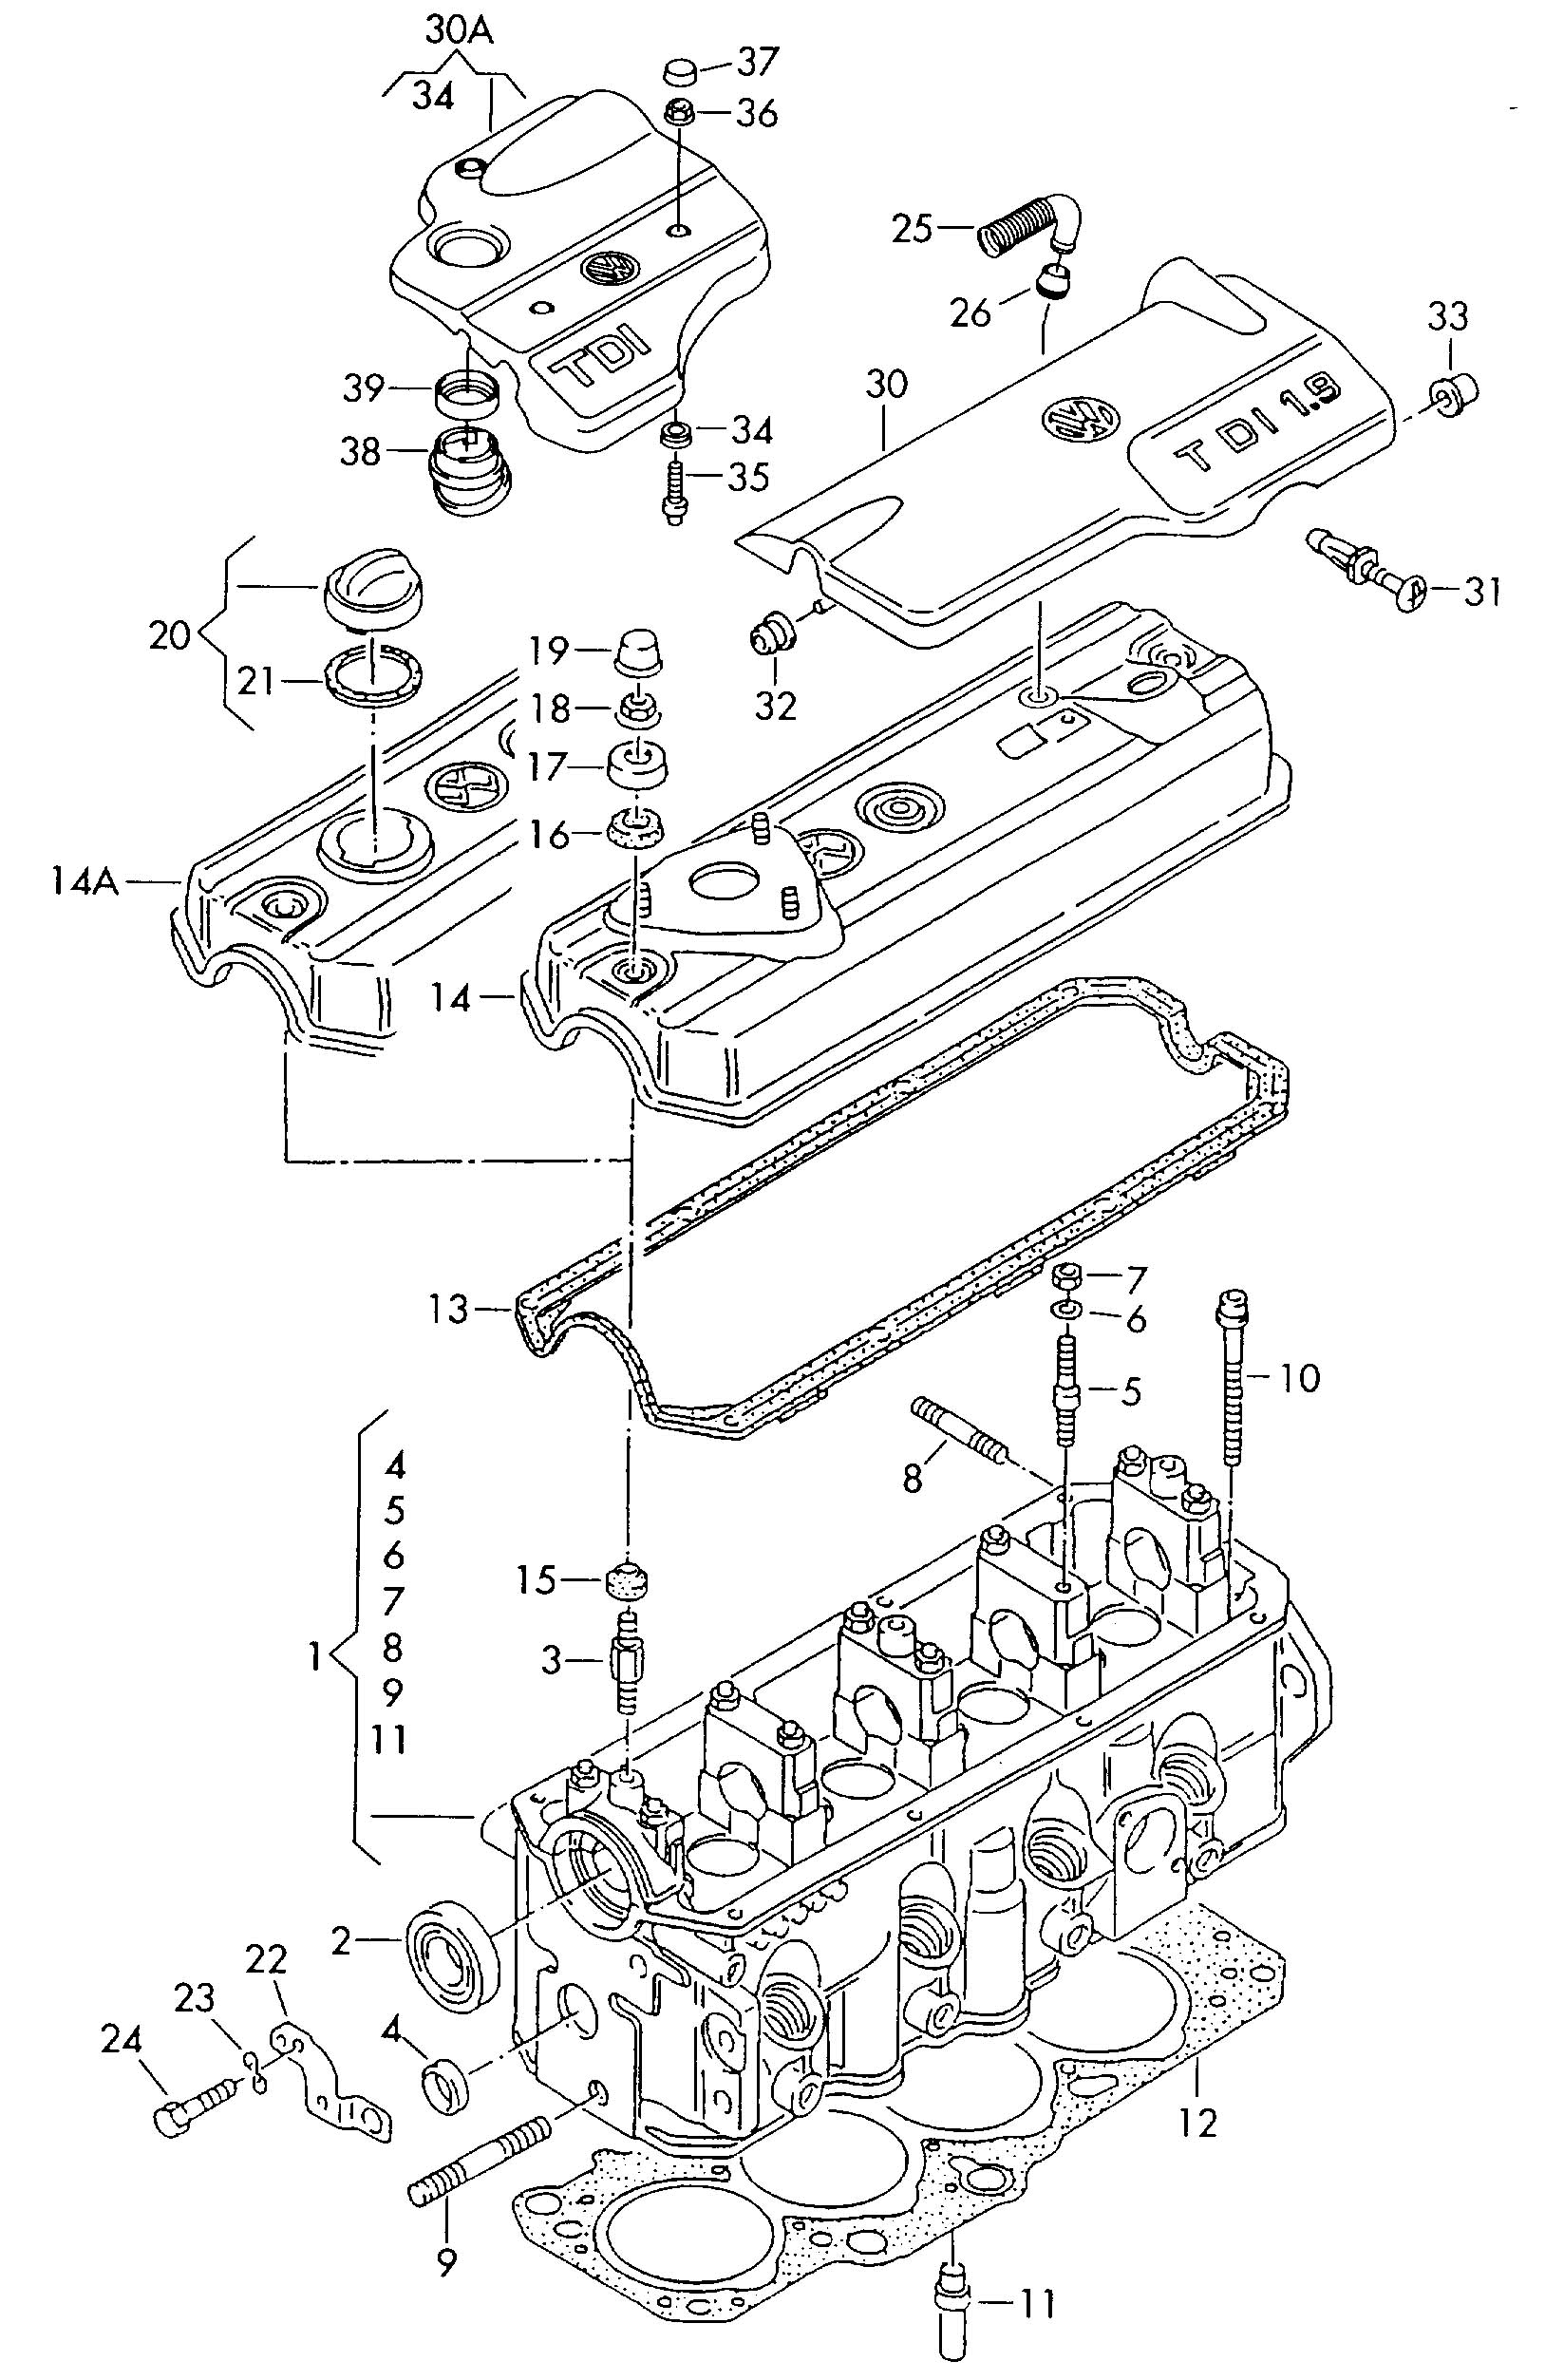 Wiring Diagram PDF: 2003 Jetta Engine Diagram